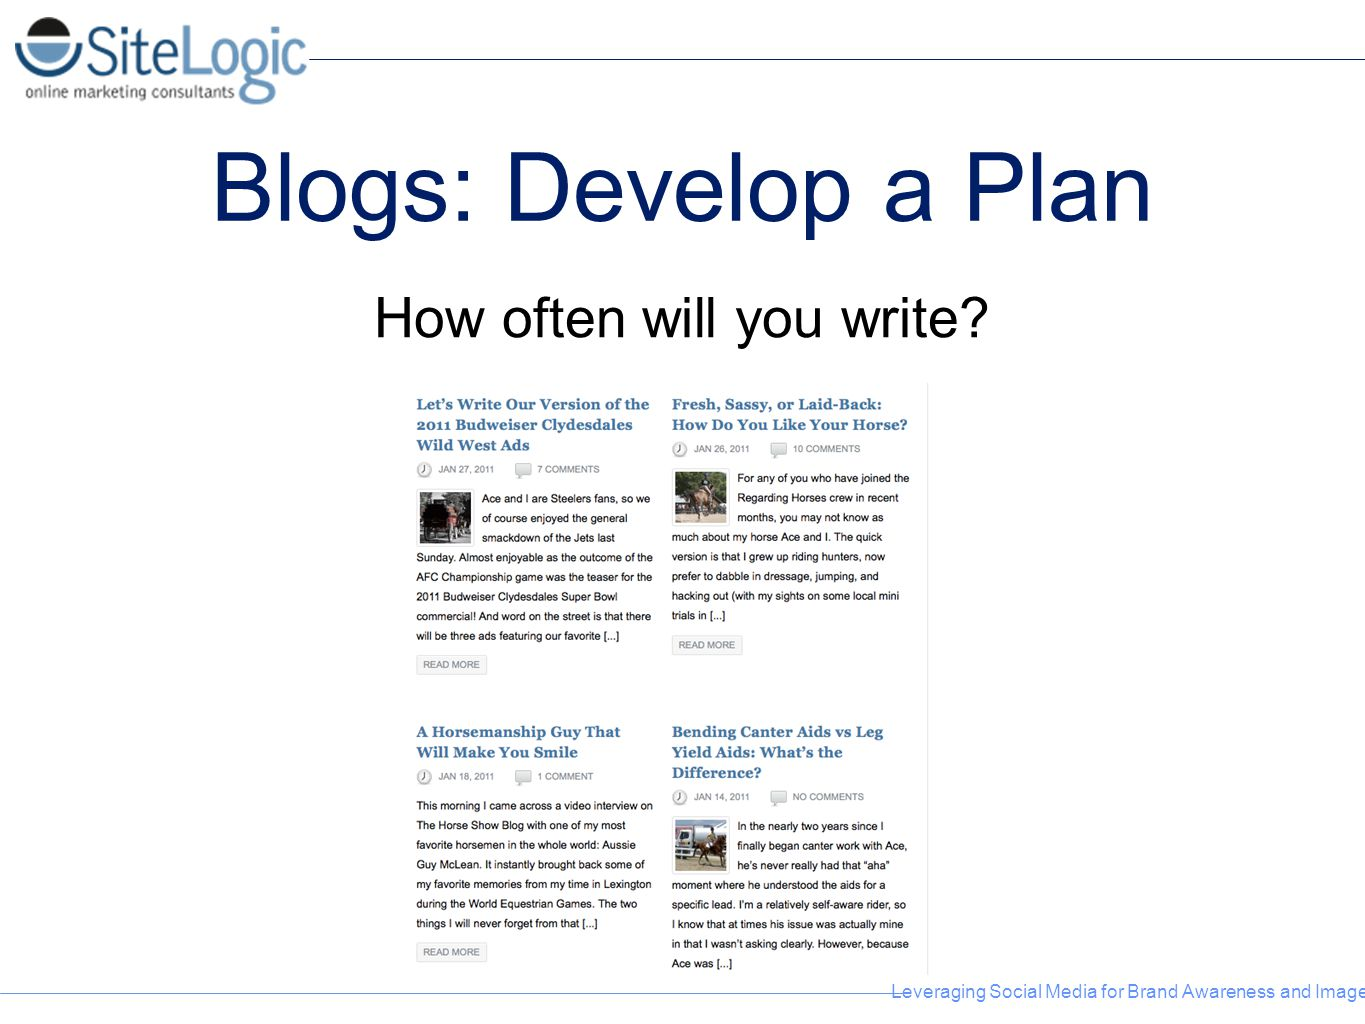 Leveraging Social Media for Brand Awareness and Image Blogs: Develop a Plan How often will you write?